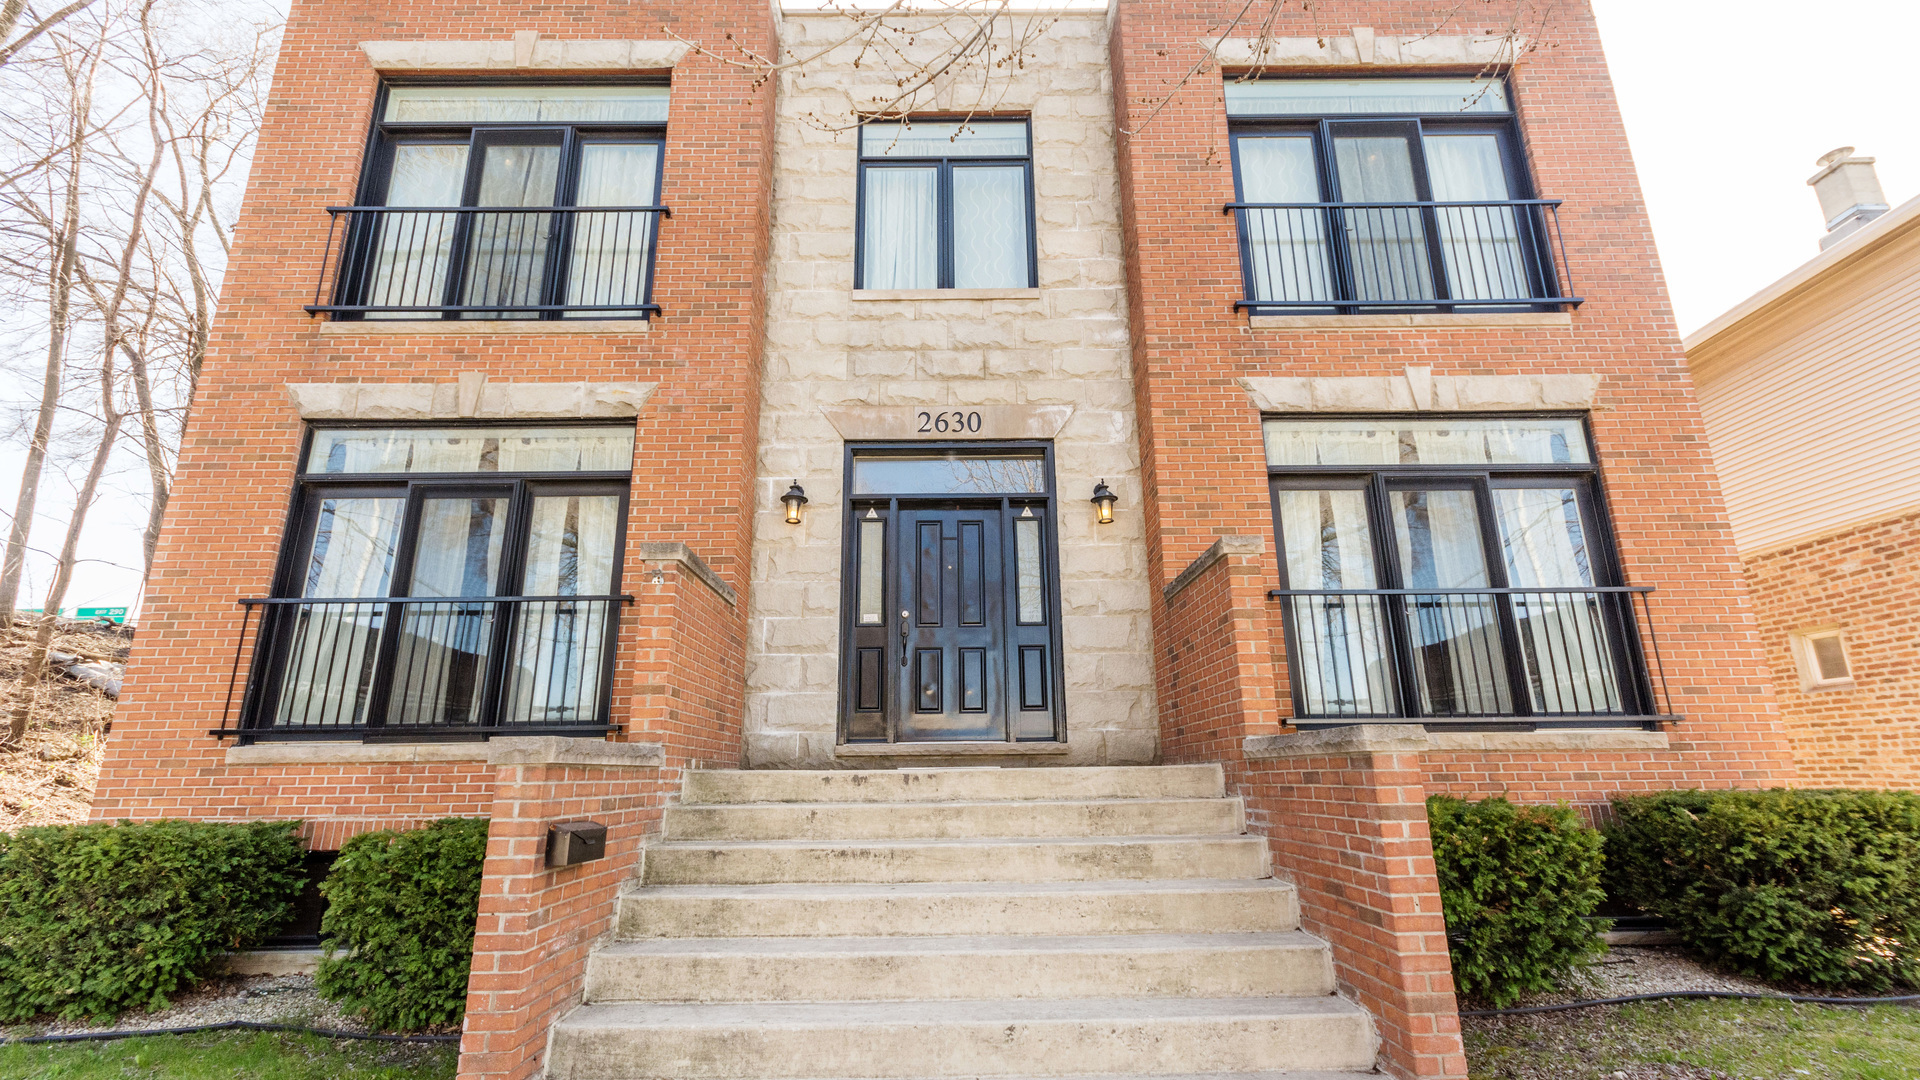 2630 SOUTH THROOP STREET, CHICAGO, IL 60608